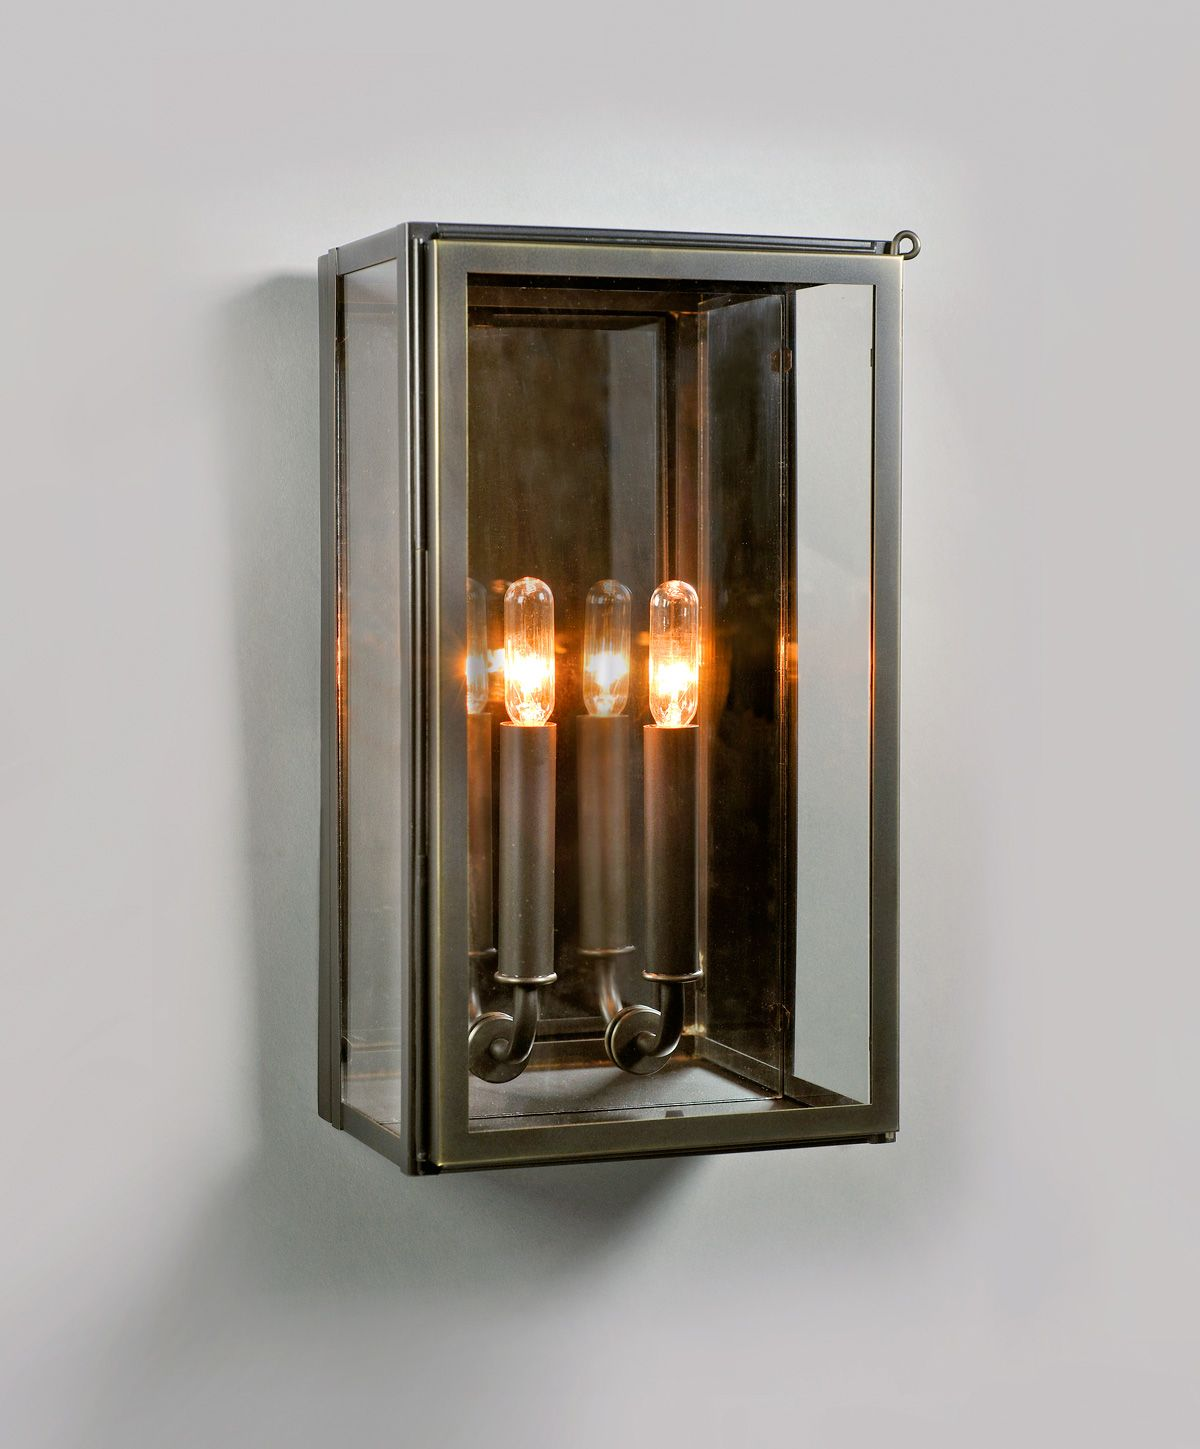 Urban Electric Vic Exterior Sconce.   Indoor wall sconces ... on Electric Wall Sconces Indoor id=35370